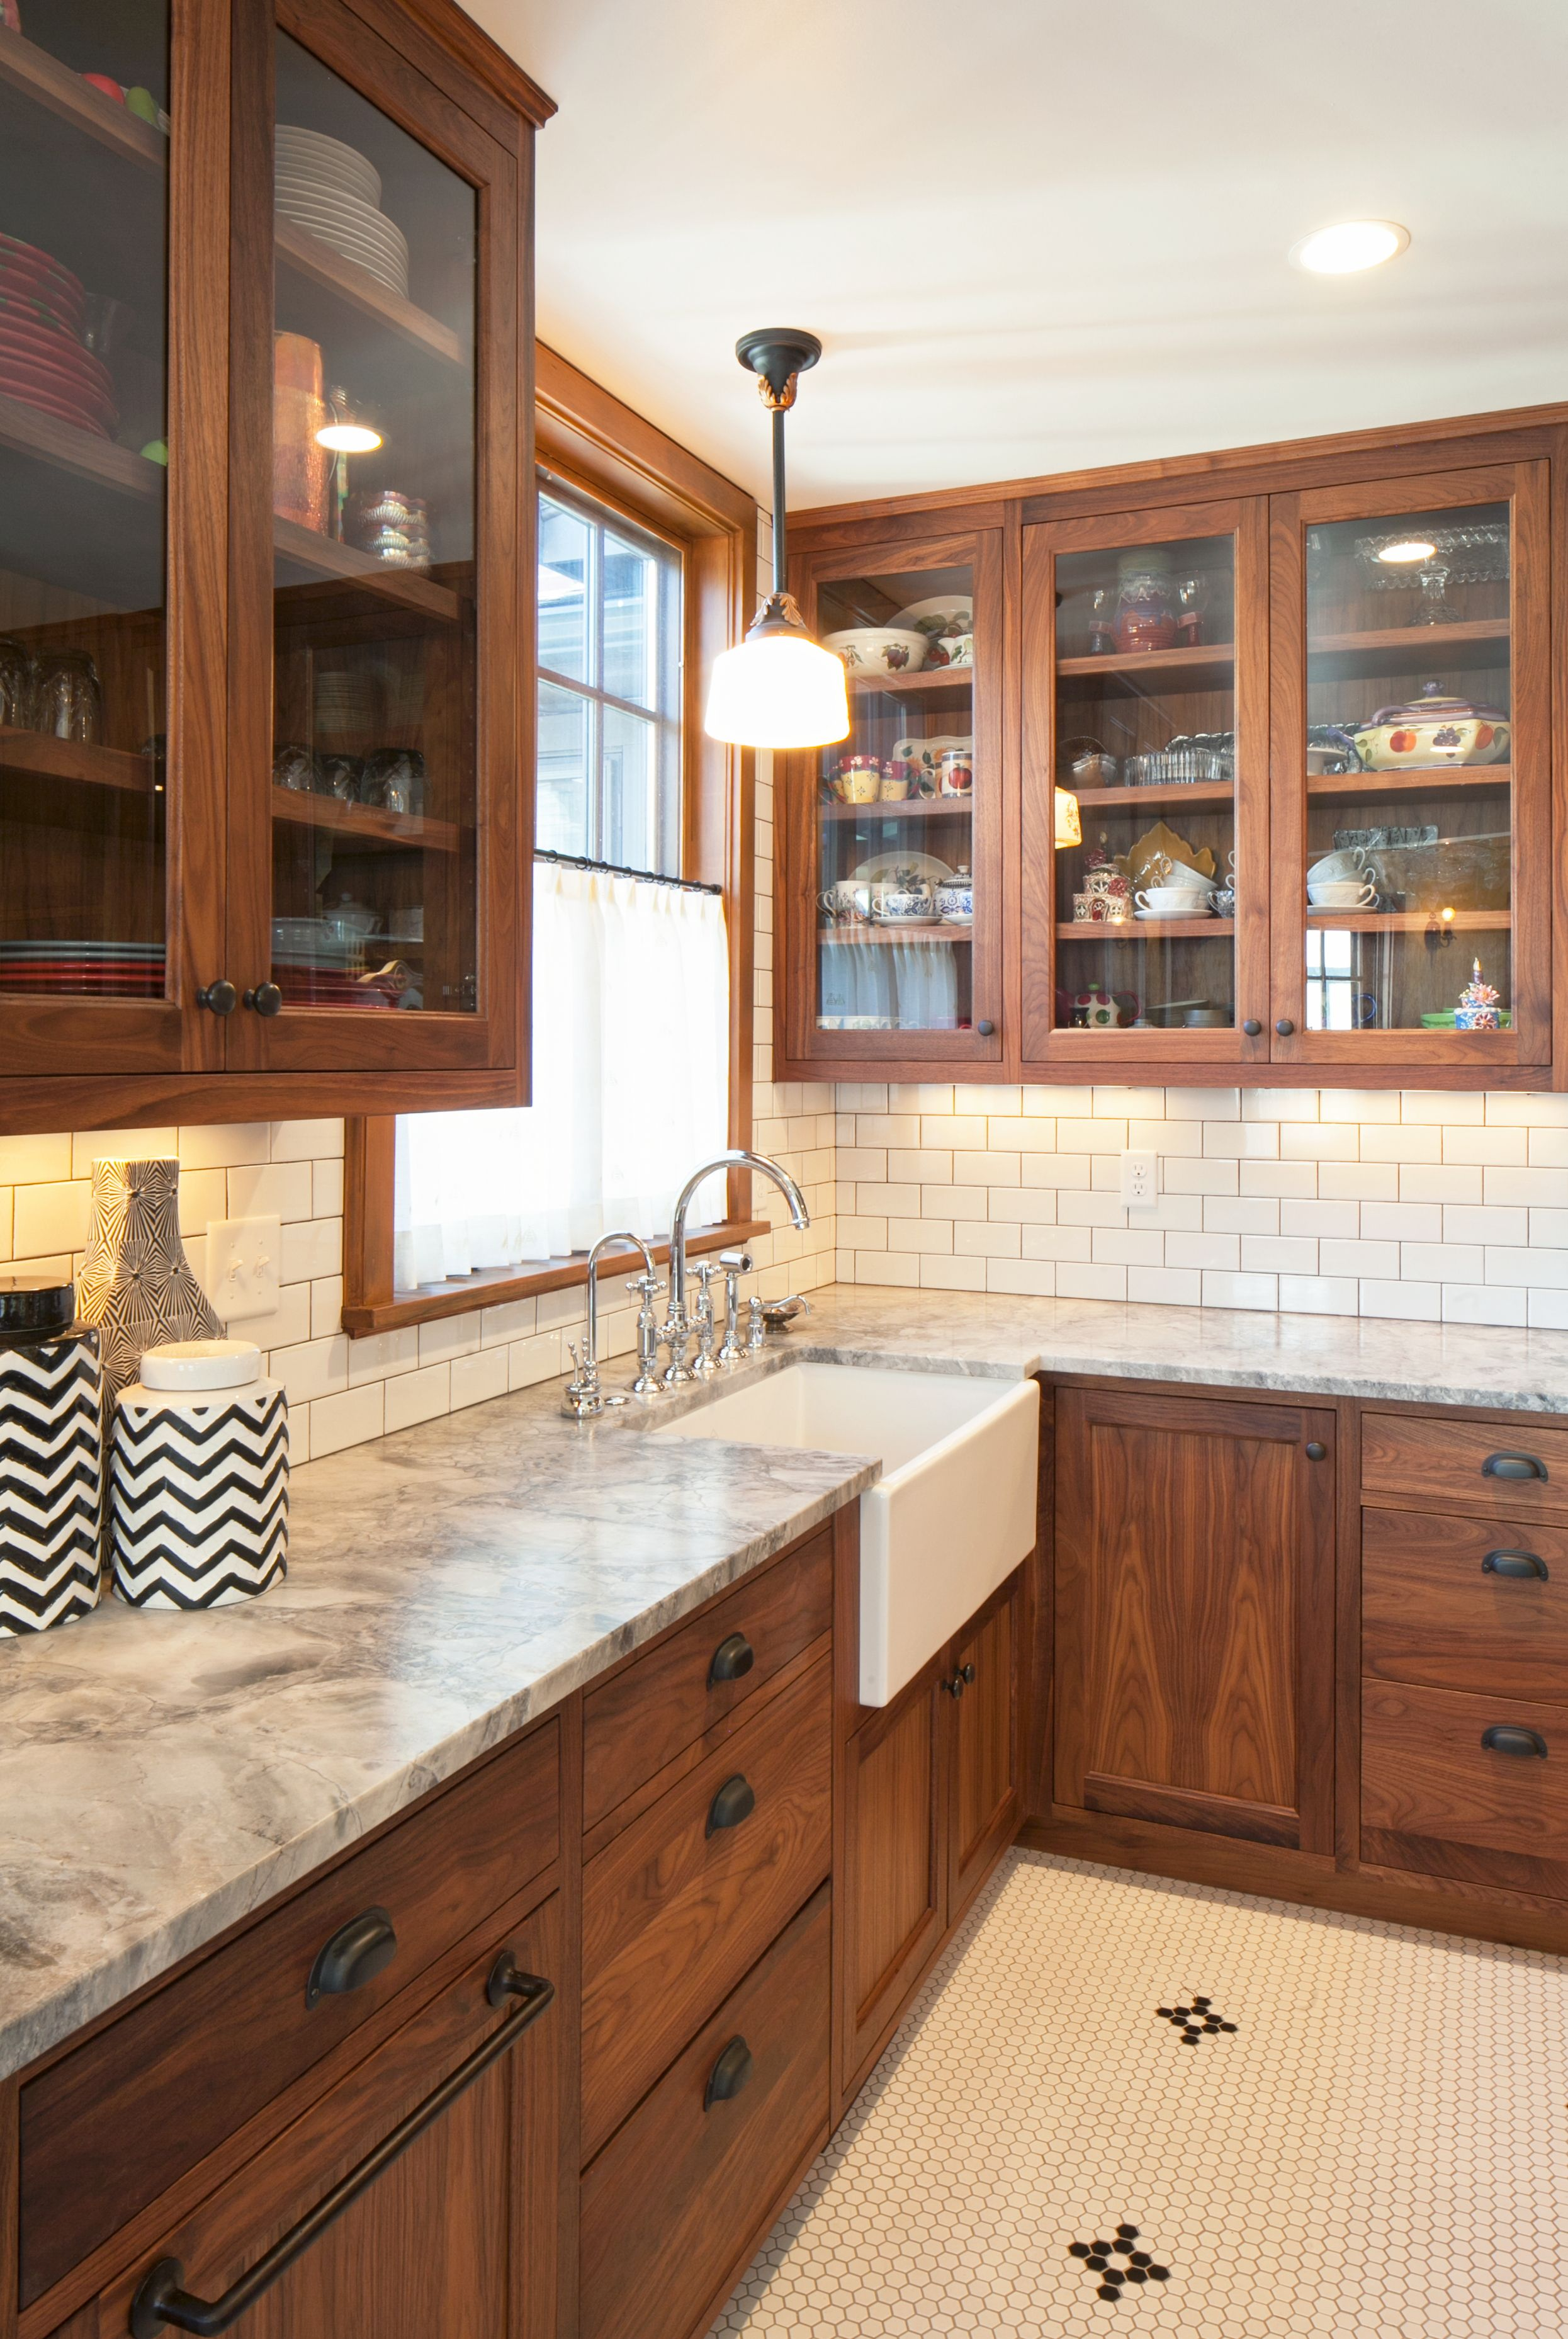 subway fabulous of backsplash outlet glass tiles kitchen tile chocolate